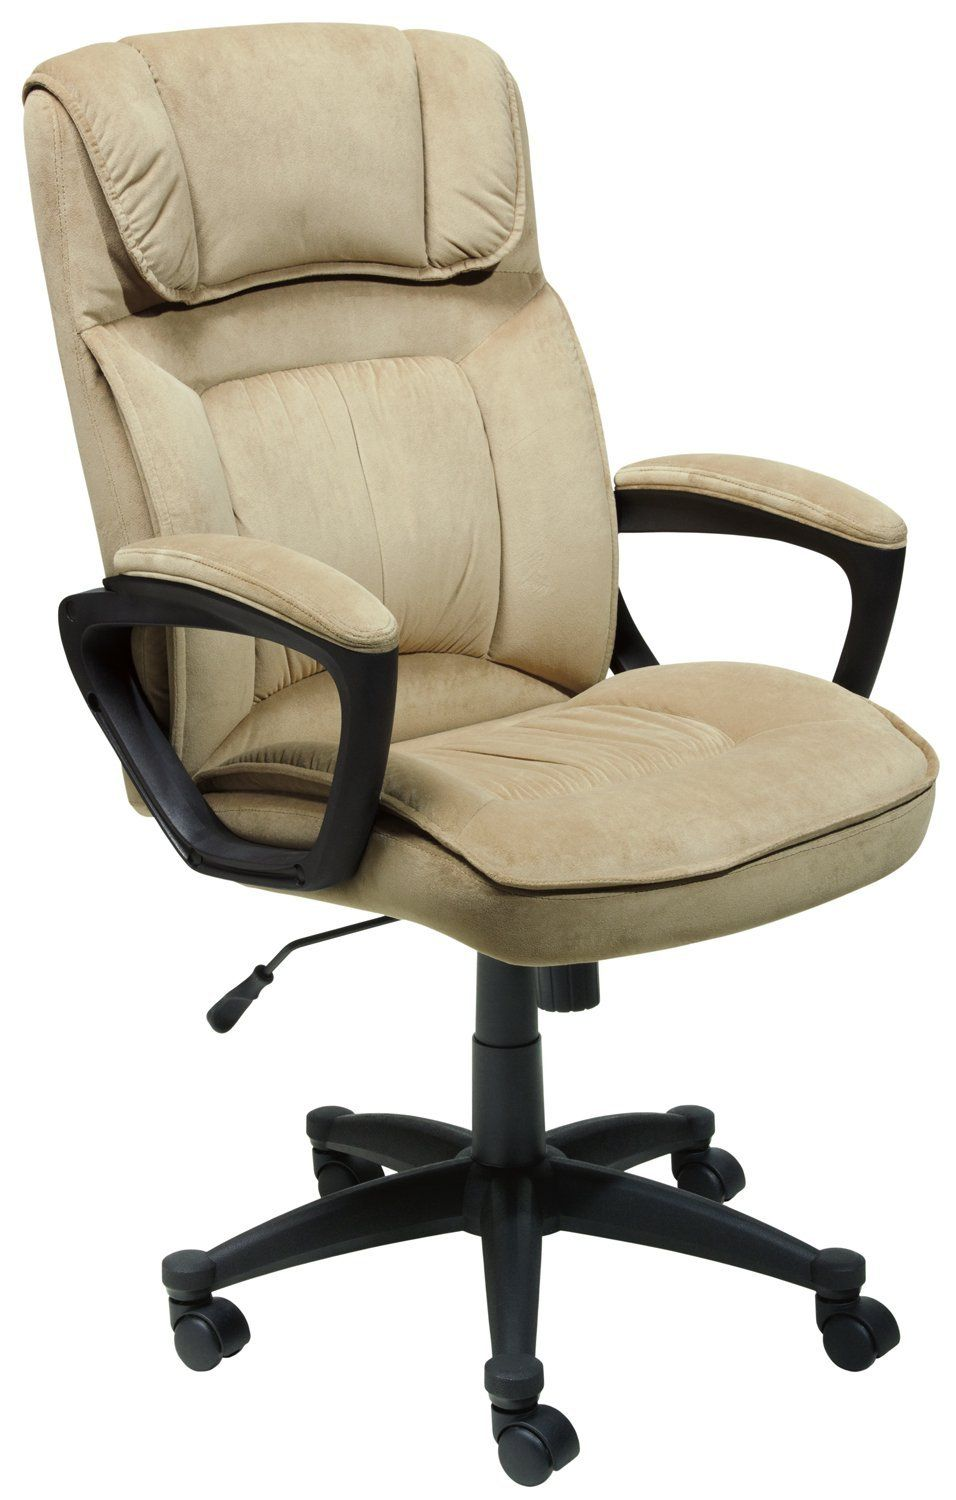 Serta Budget Office Chair For Bad Backs